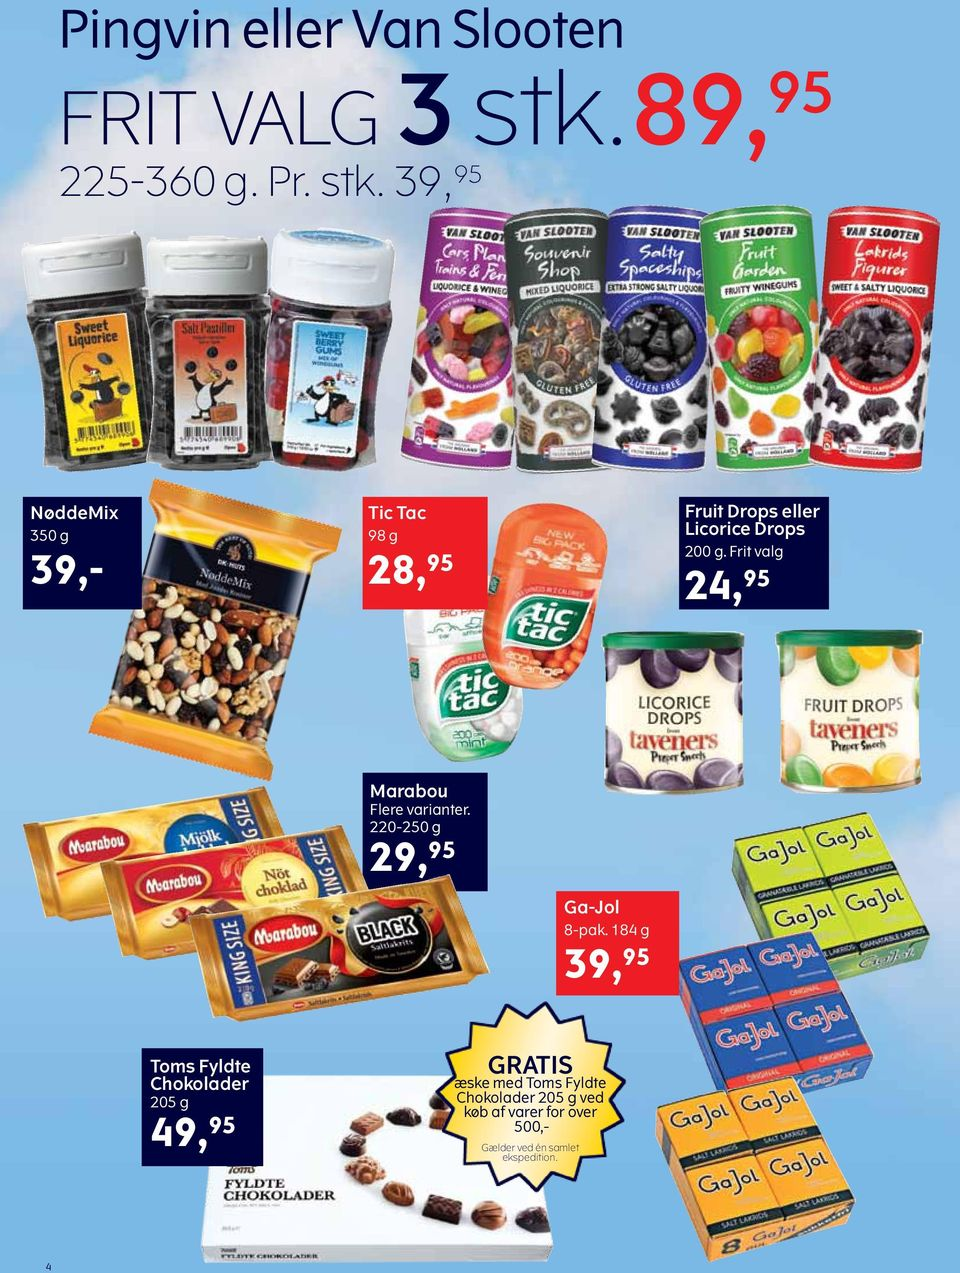 39, 95 NøddeMix 350 g 39,- Tic Tac 98 g 28, 95 Fruit Drops eller Licorice Drops 200 g.